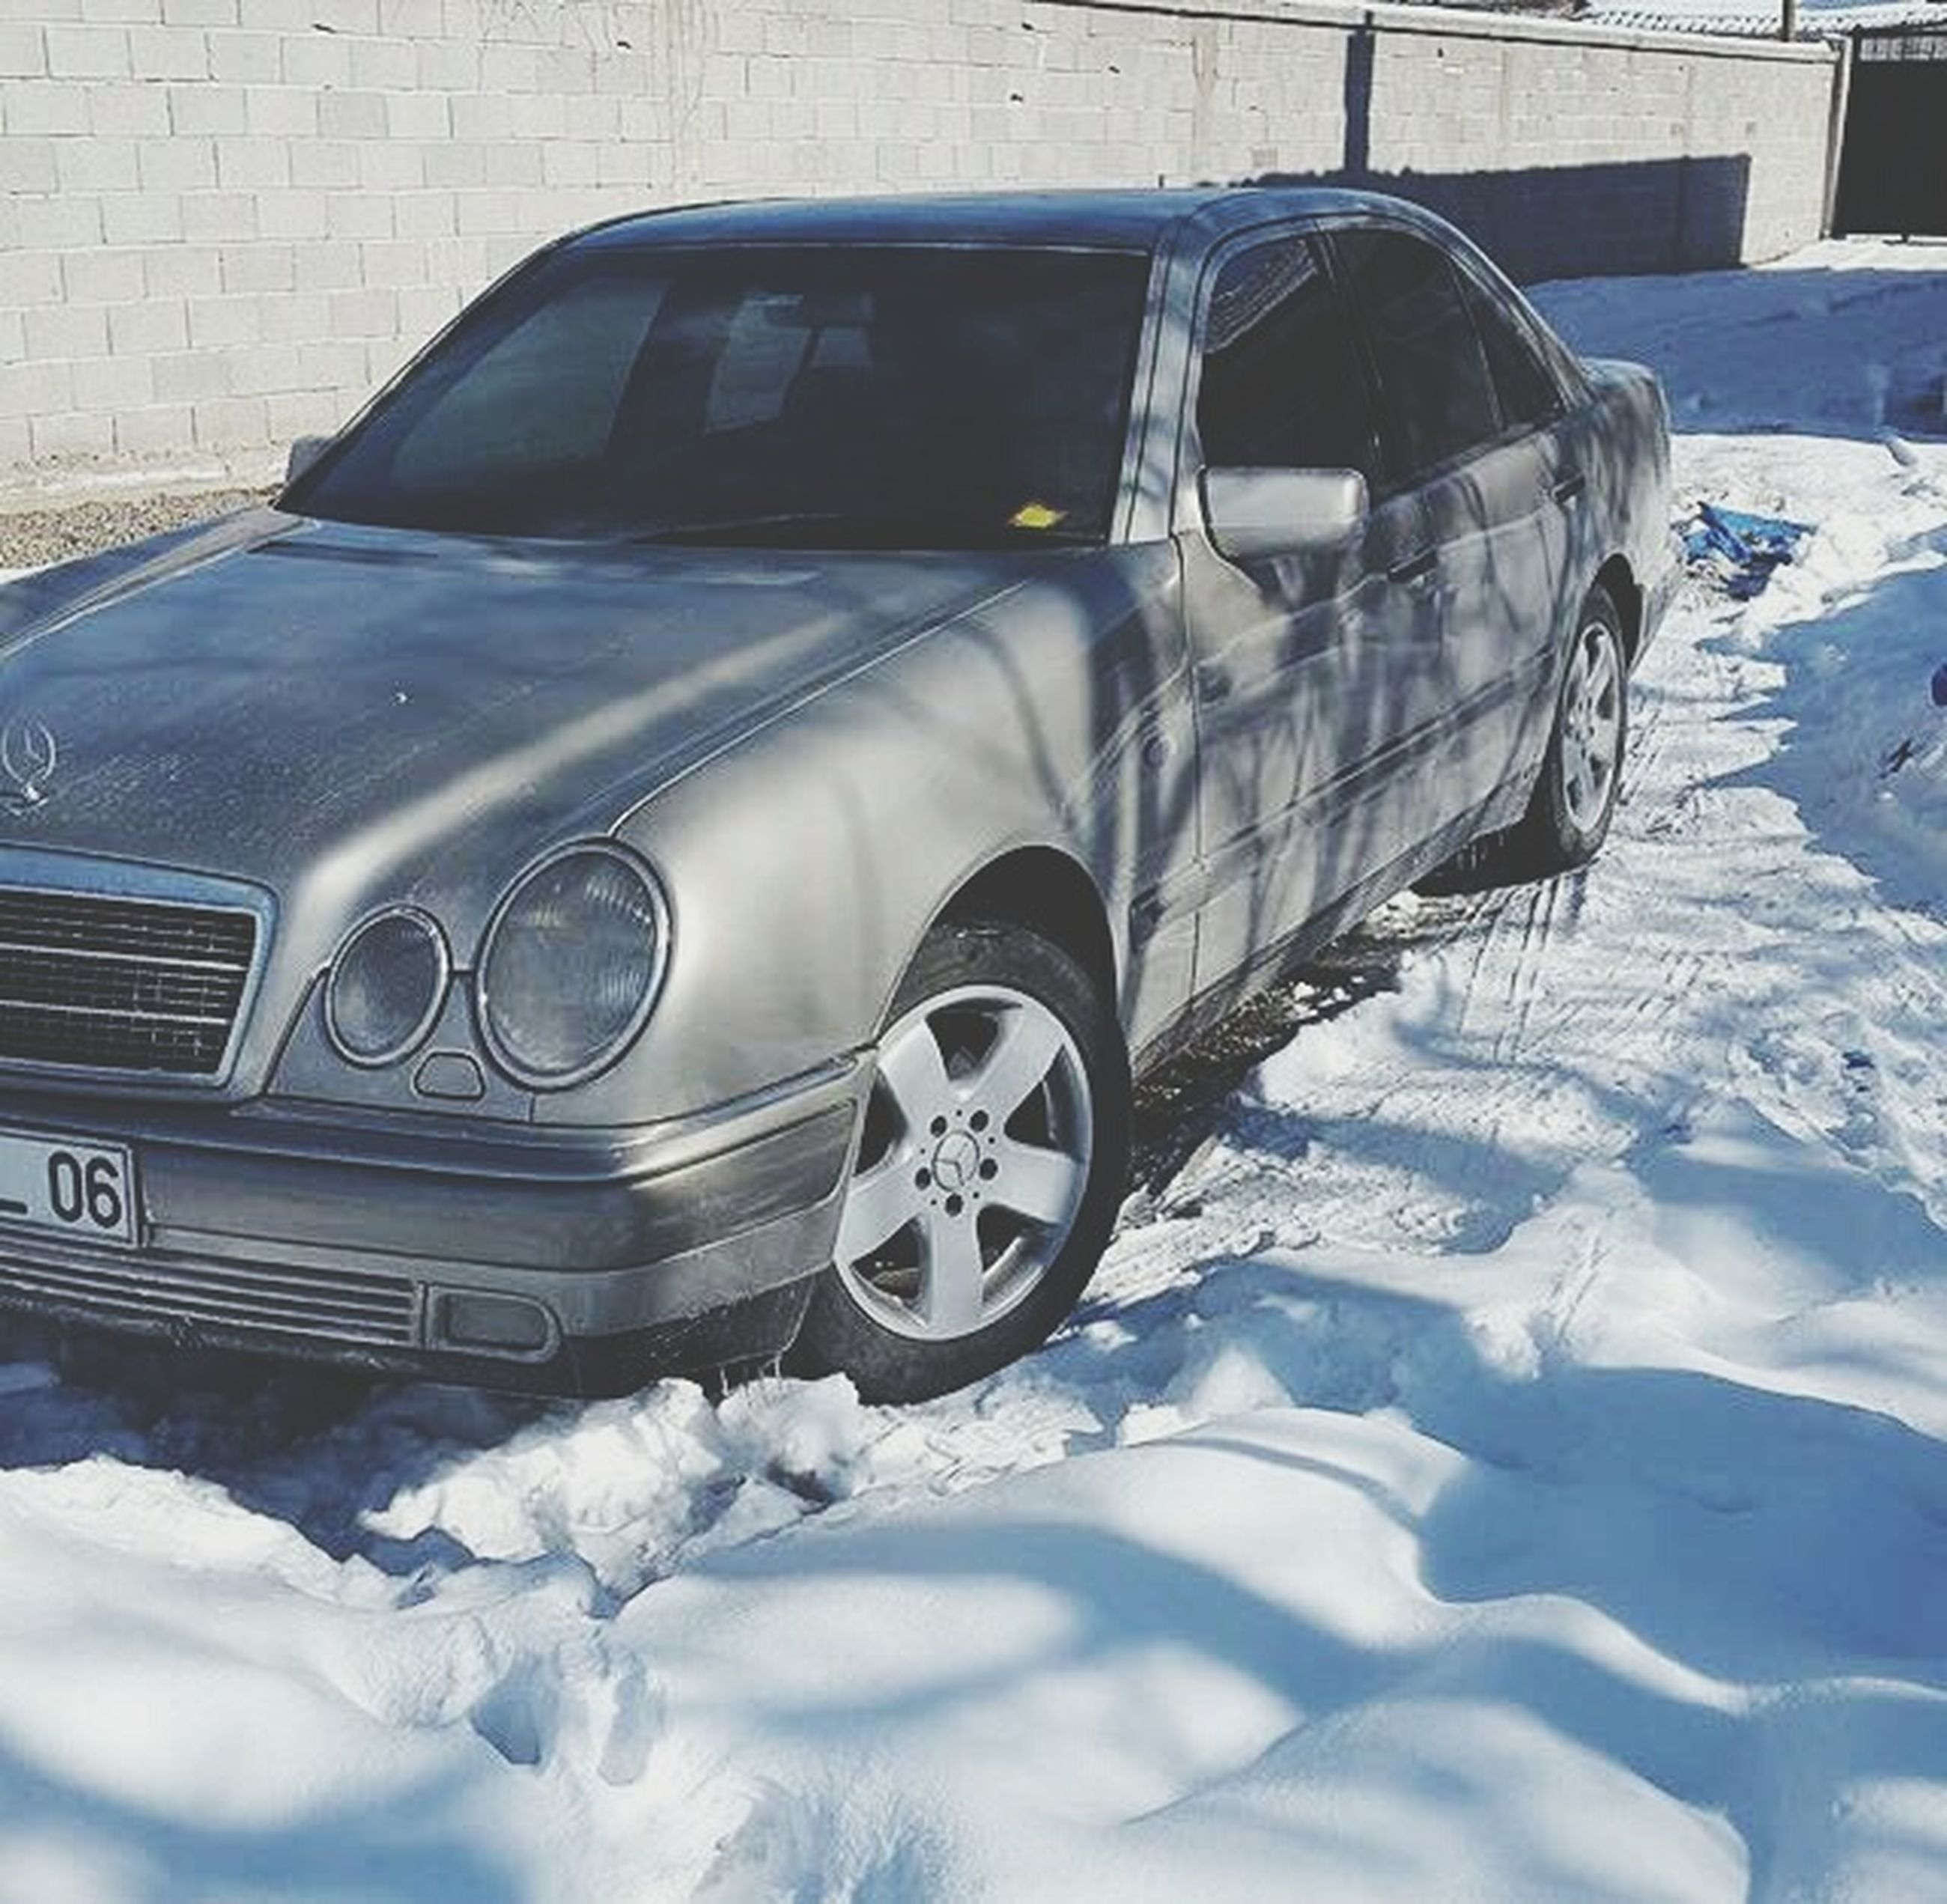 car, snow, winter, land vehicle, mode of transport, transportation, cold temperature, stationary, no people, outdoors, day, close-up